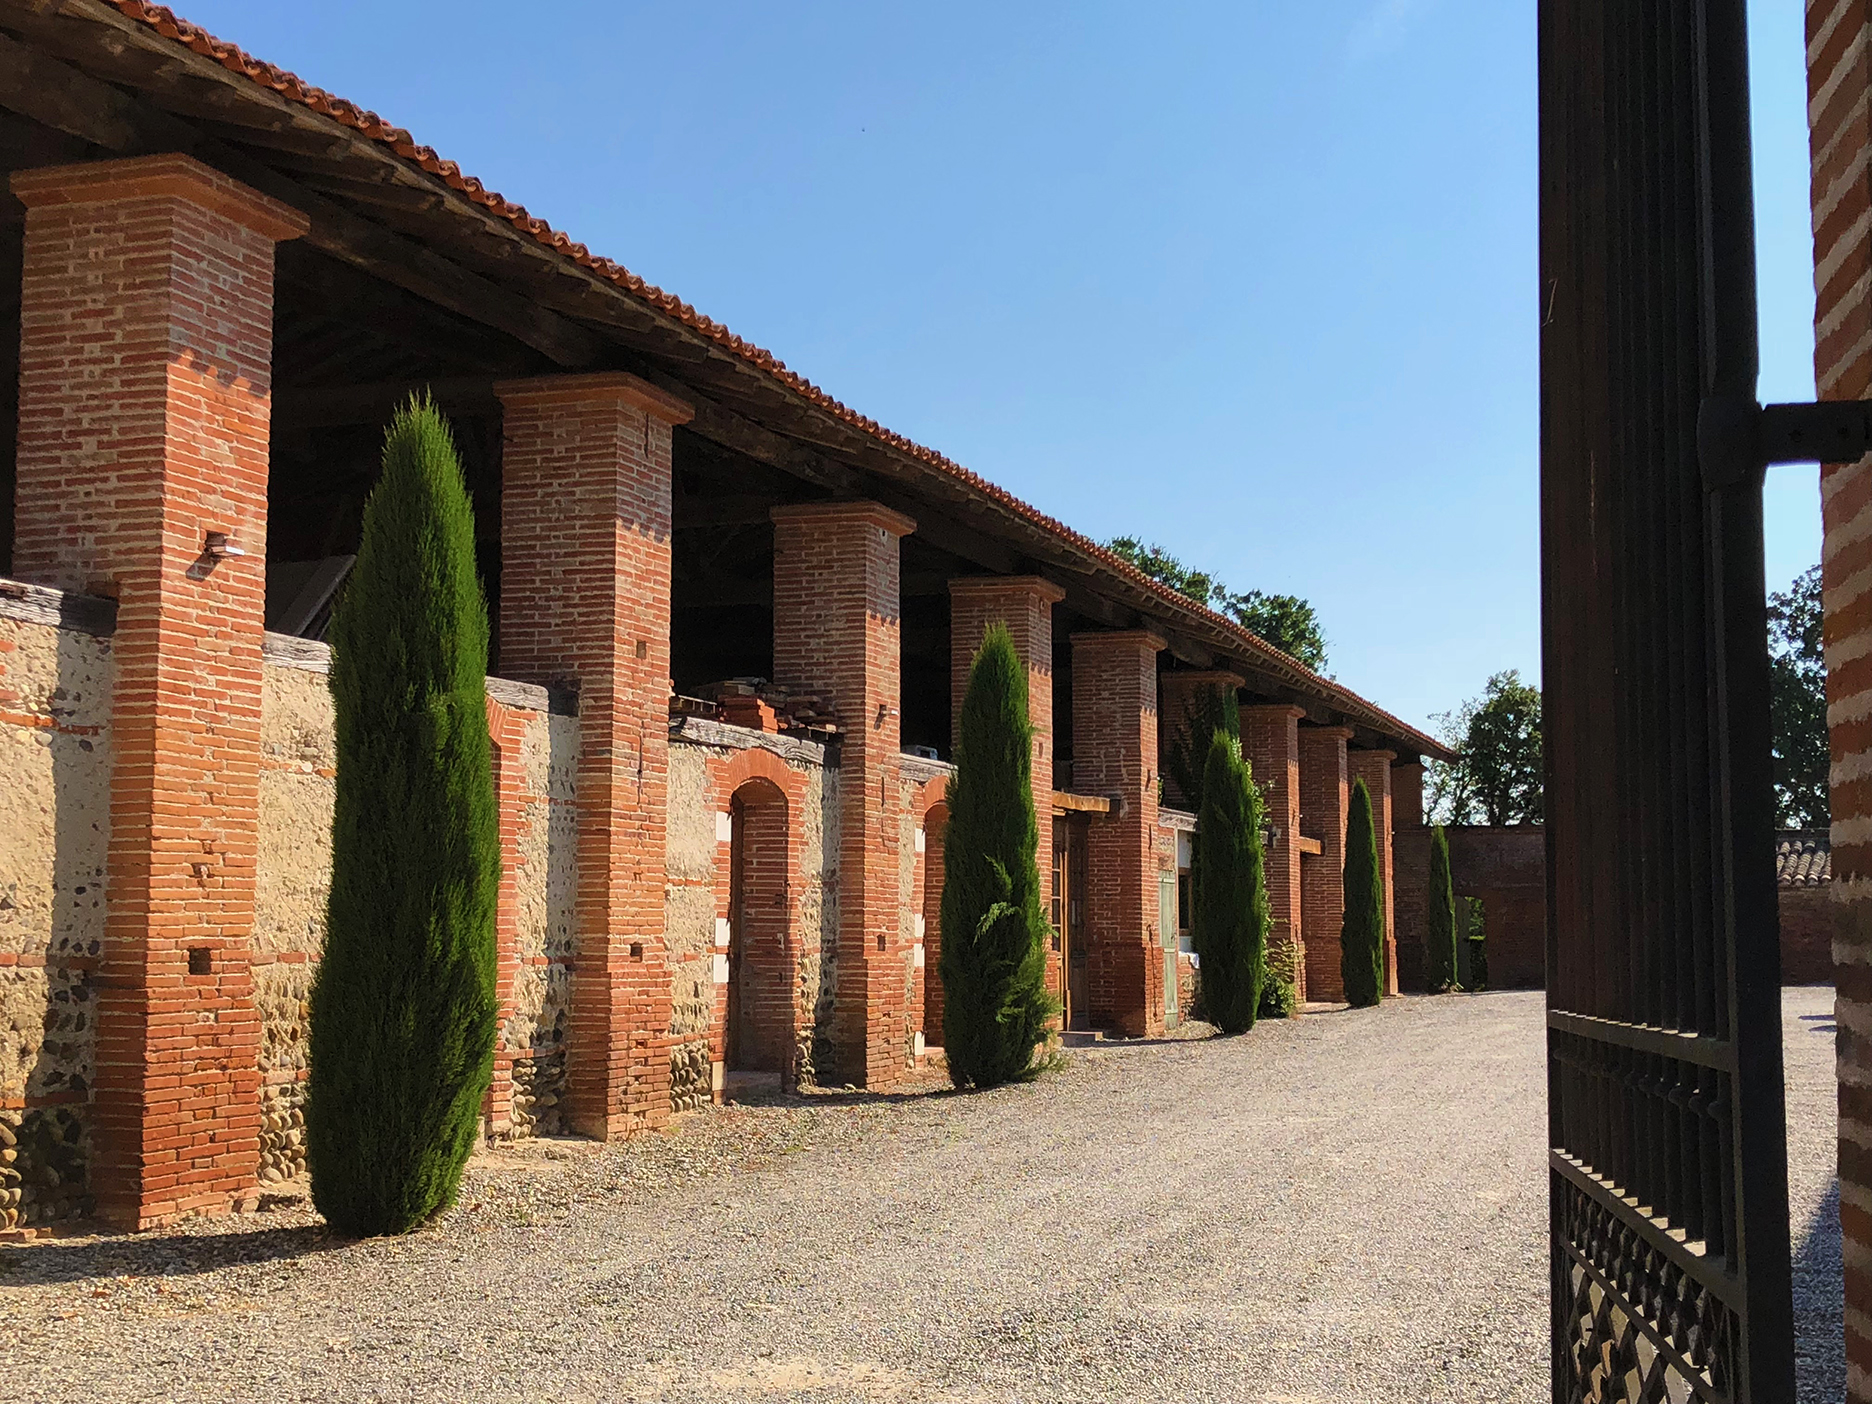 Stables at the château de Merville